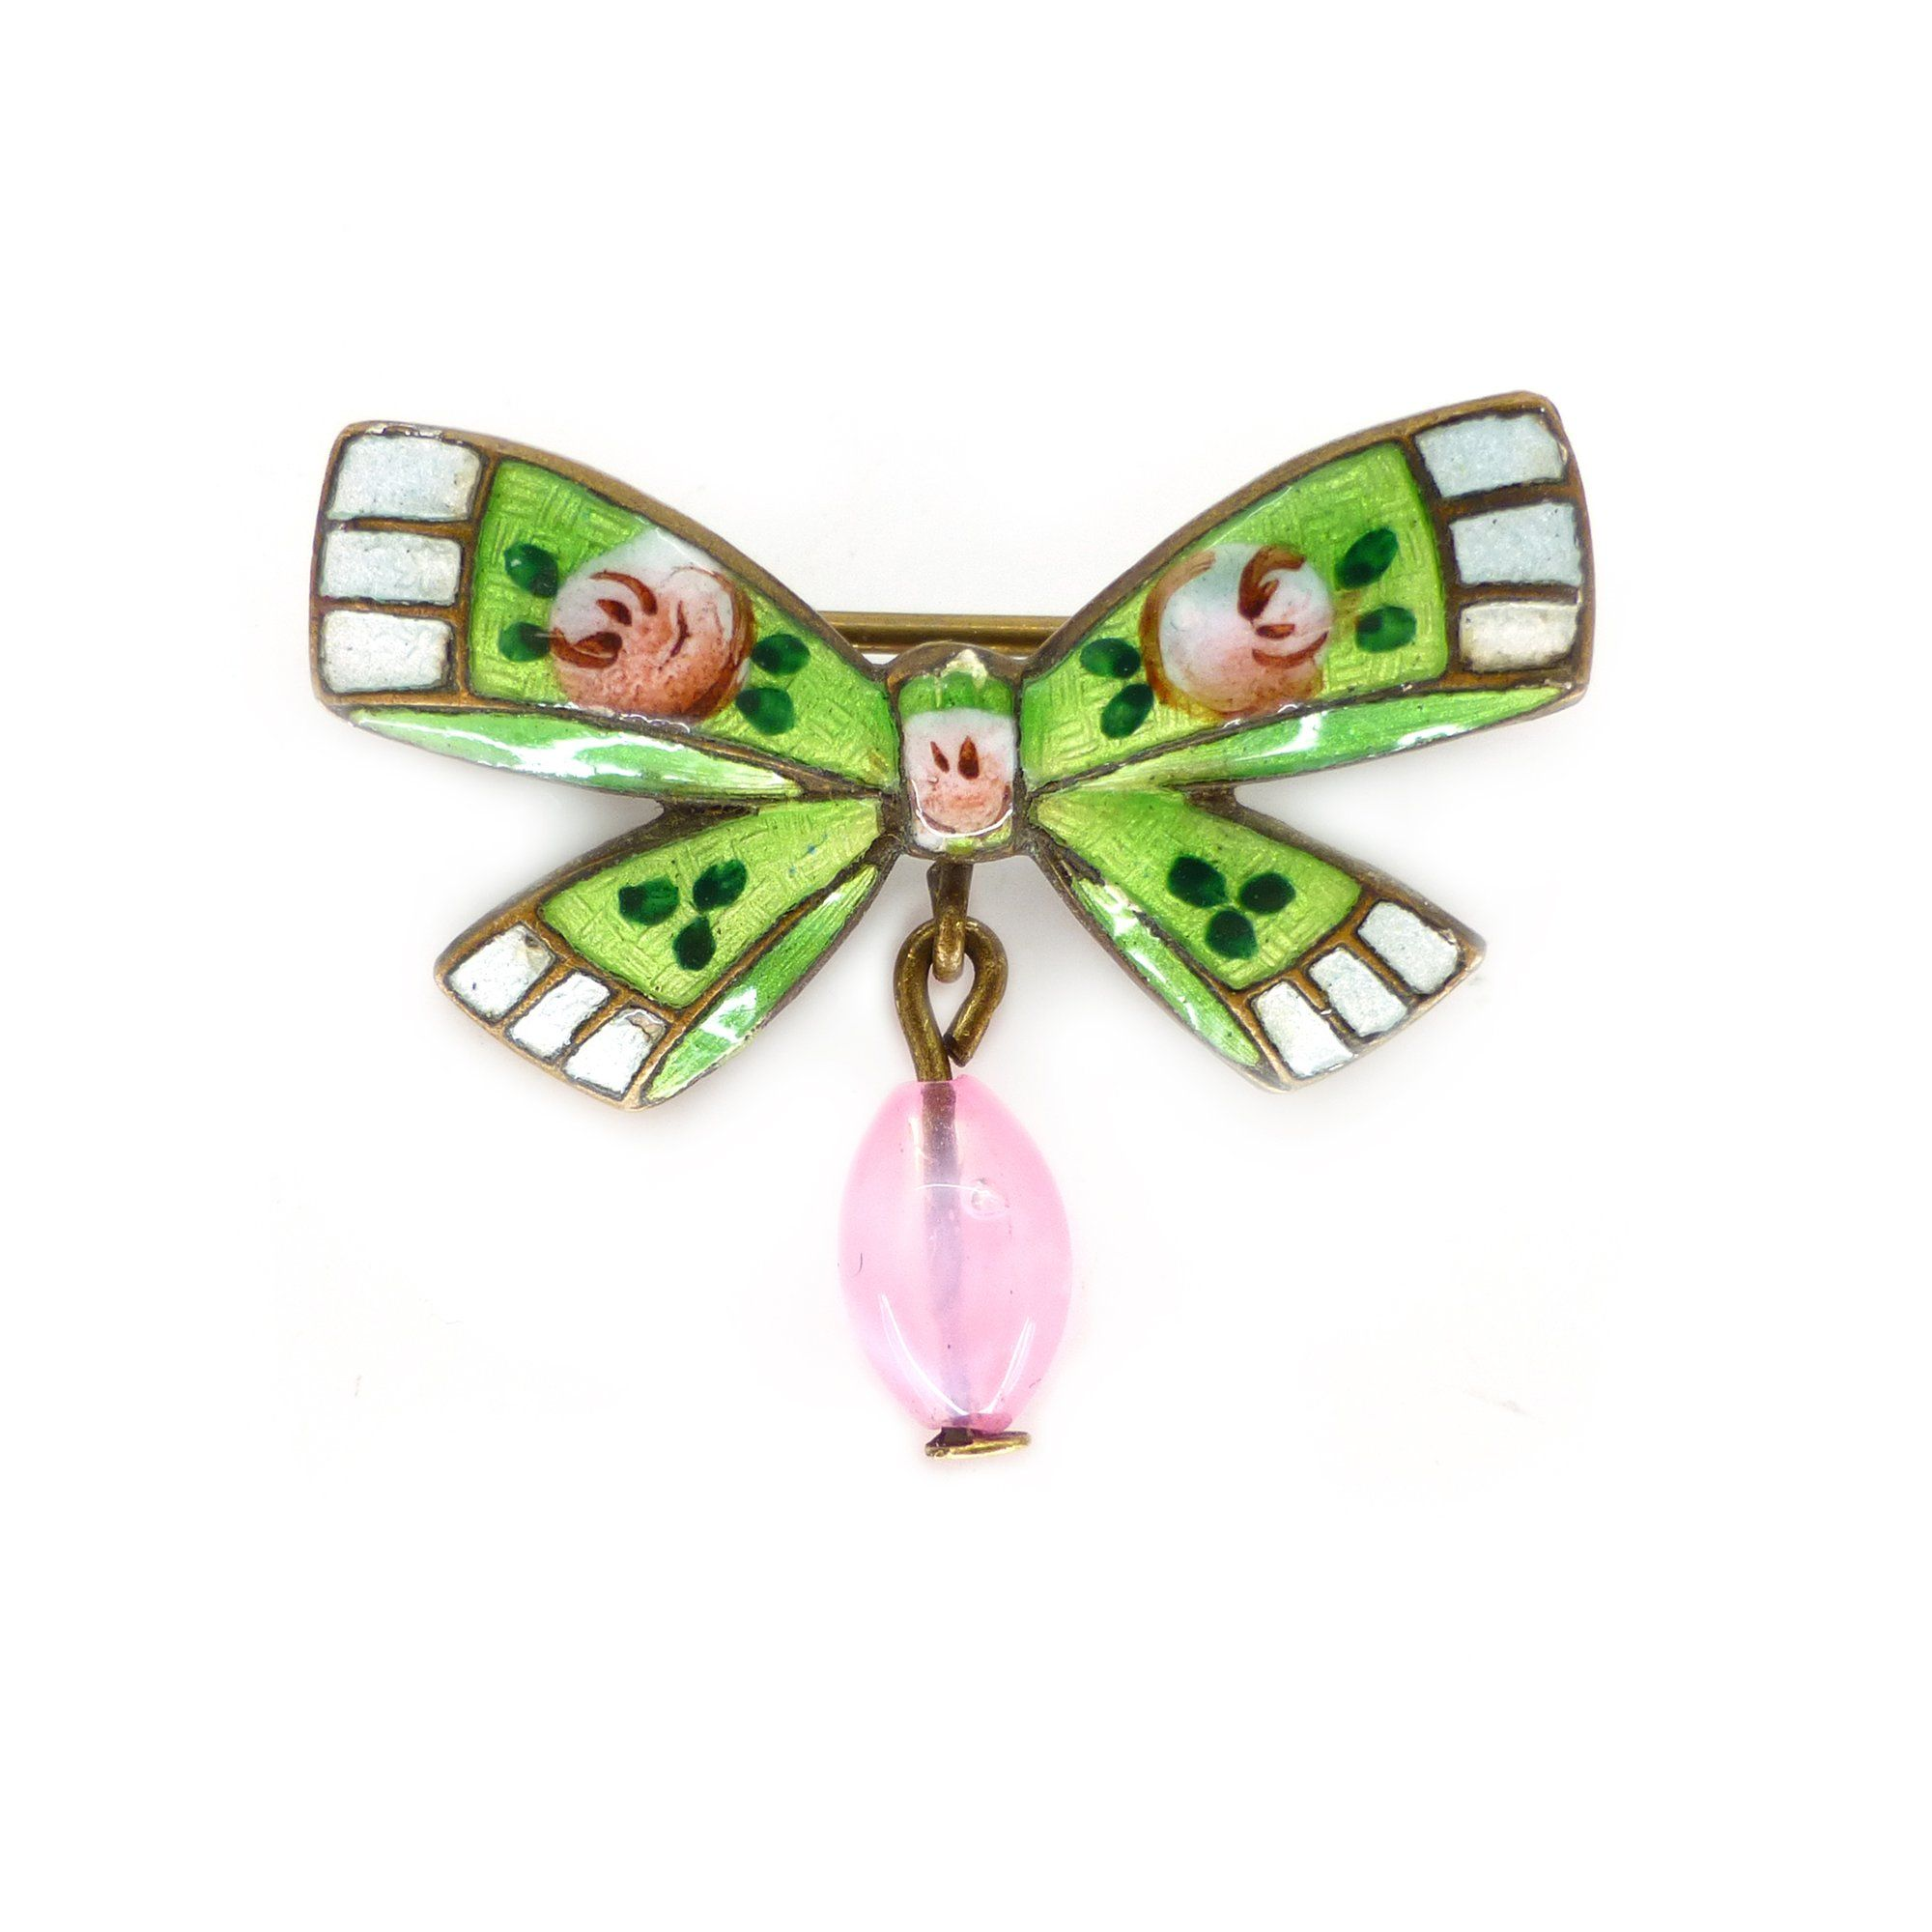 enamelled antiques butter brooch victorian products spider lane